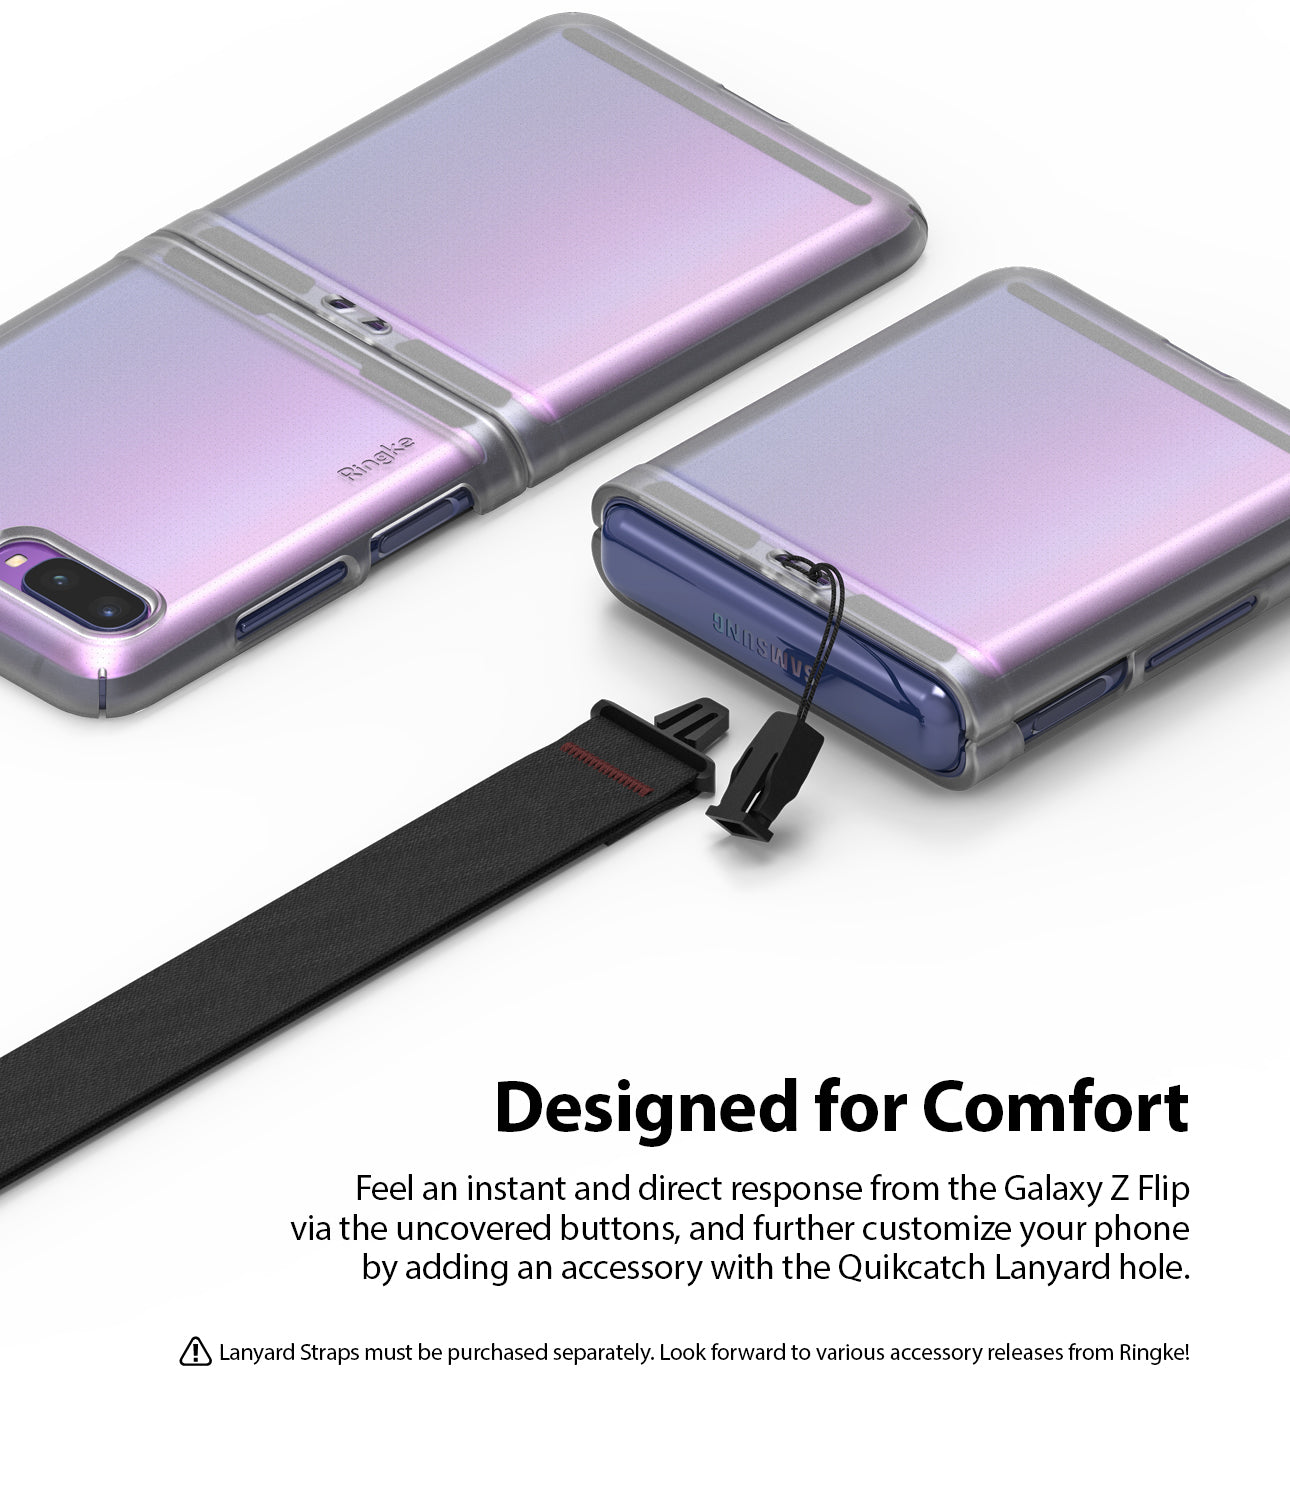 samsung galaxy z flip case quikcatch strap hole